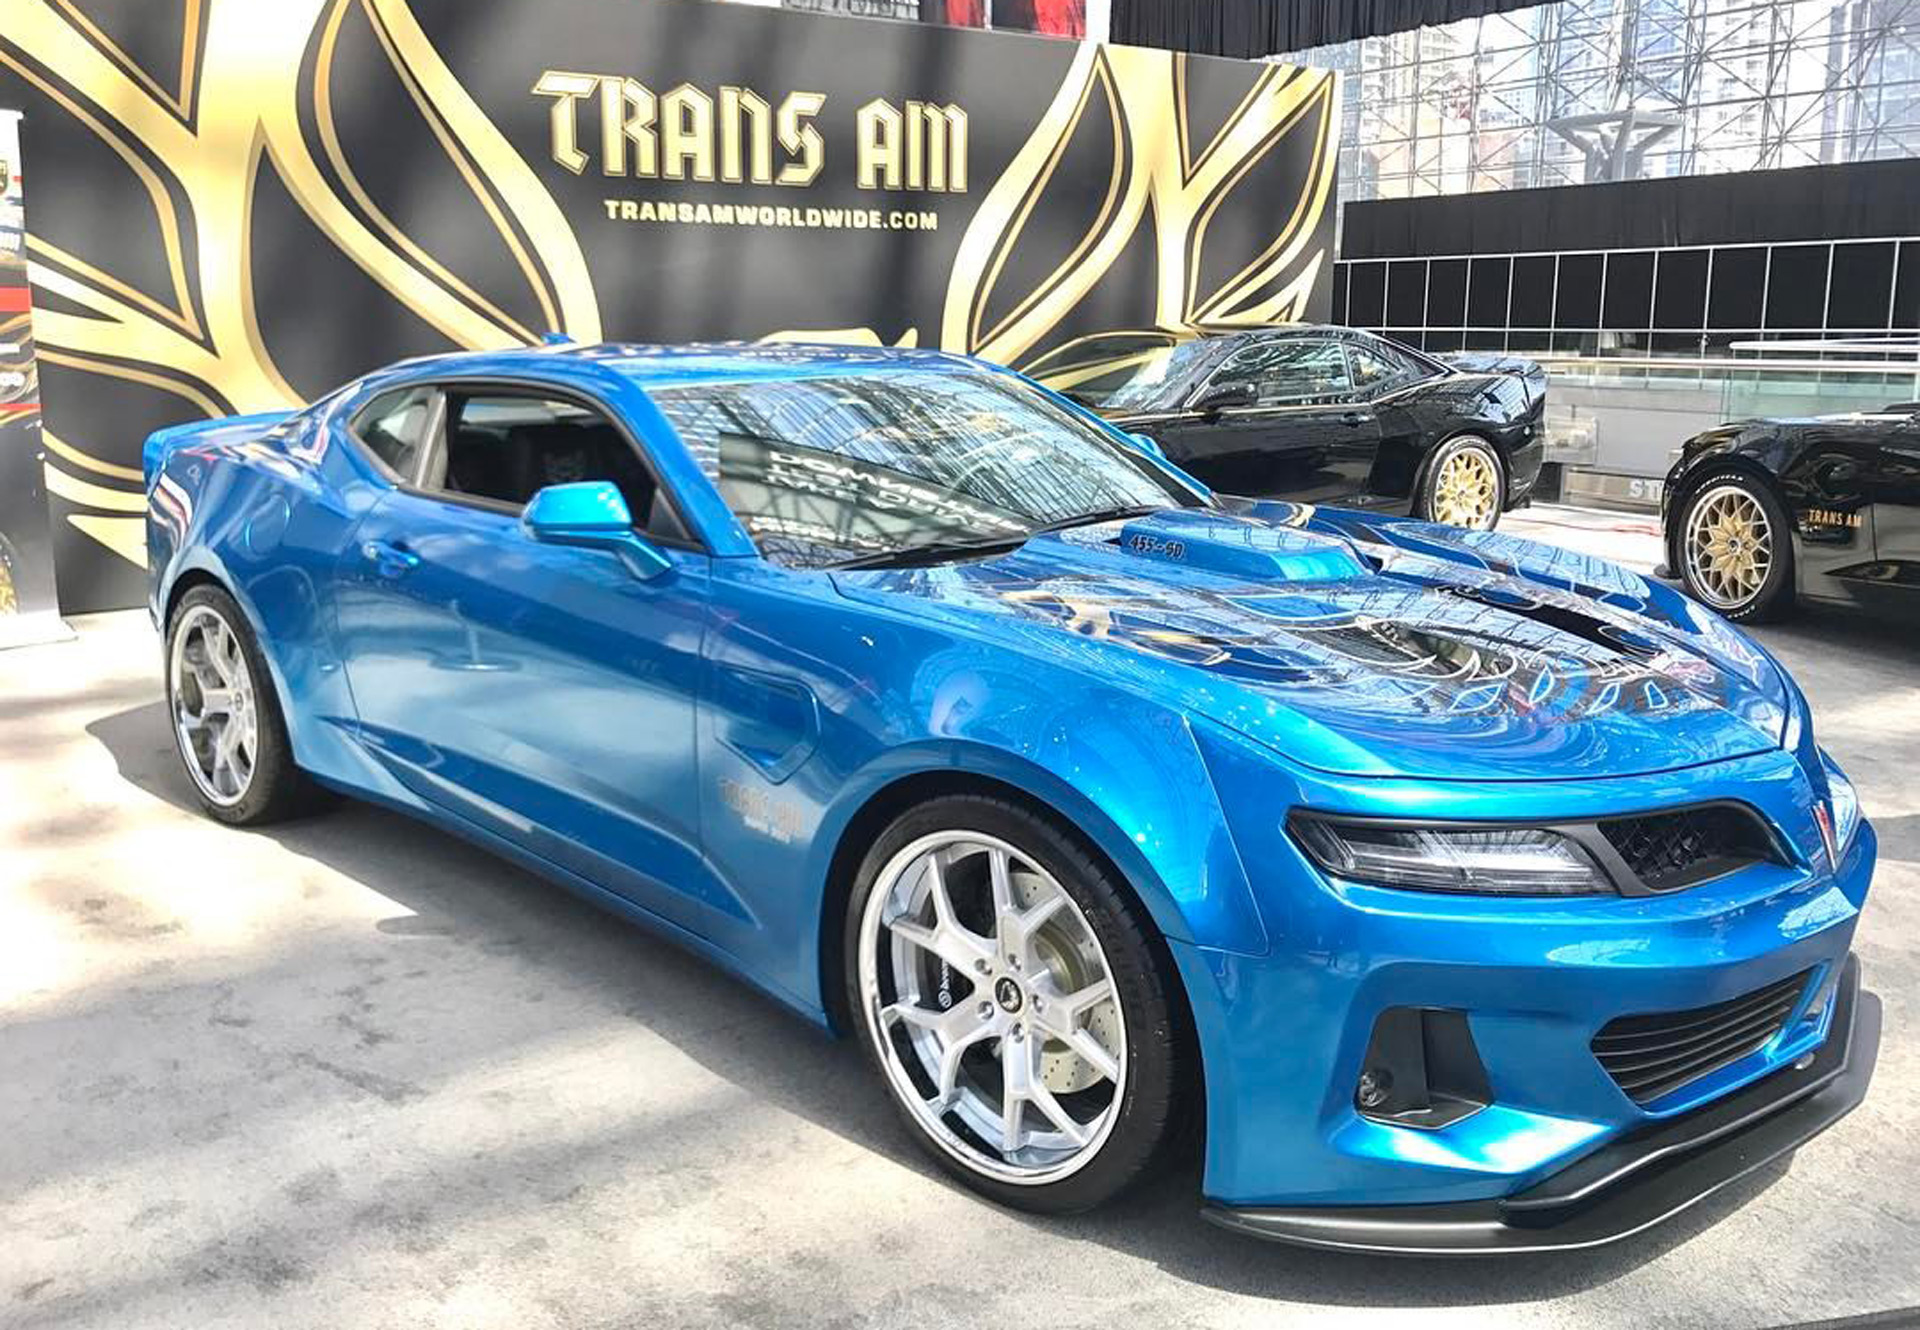 6th Gen Camaro Trans Am Conversion Comes Packing 1 000